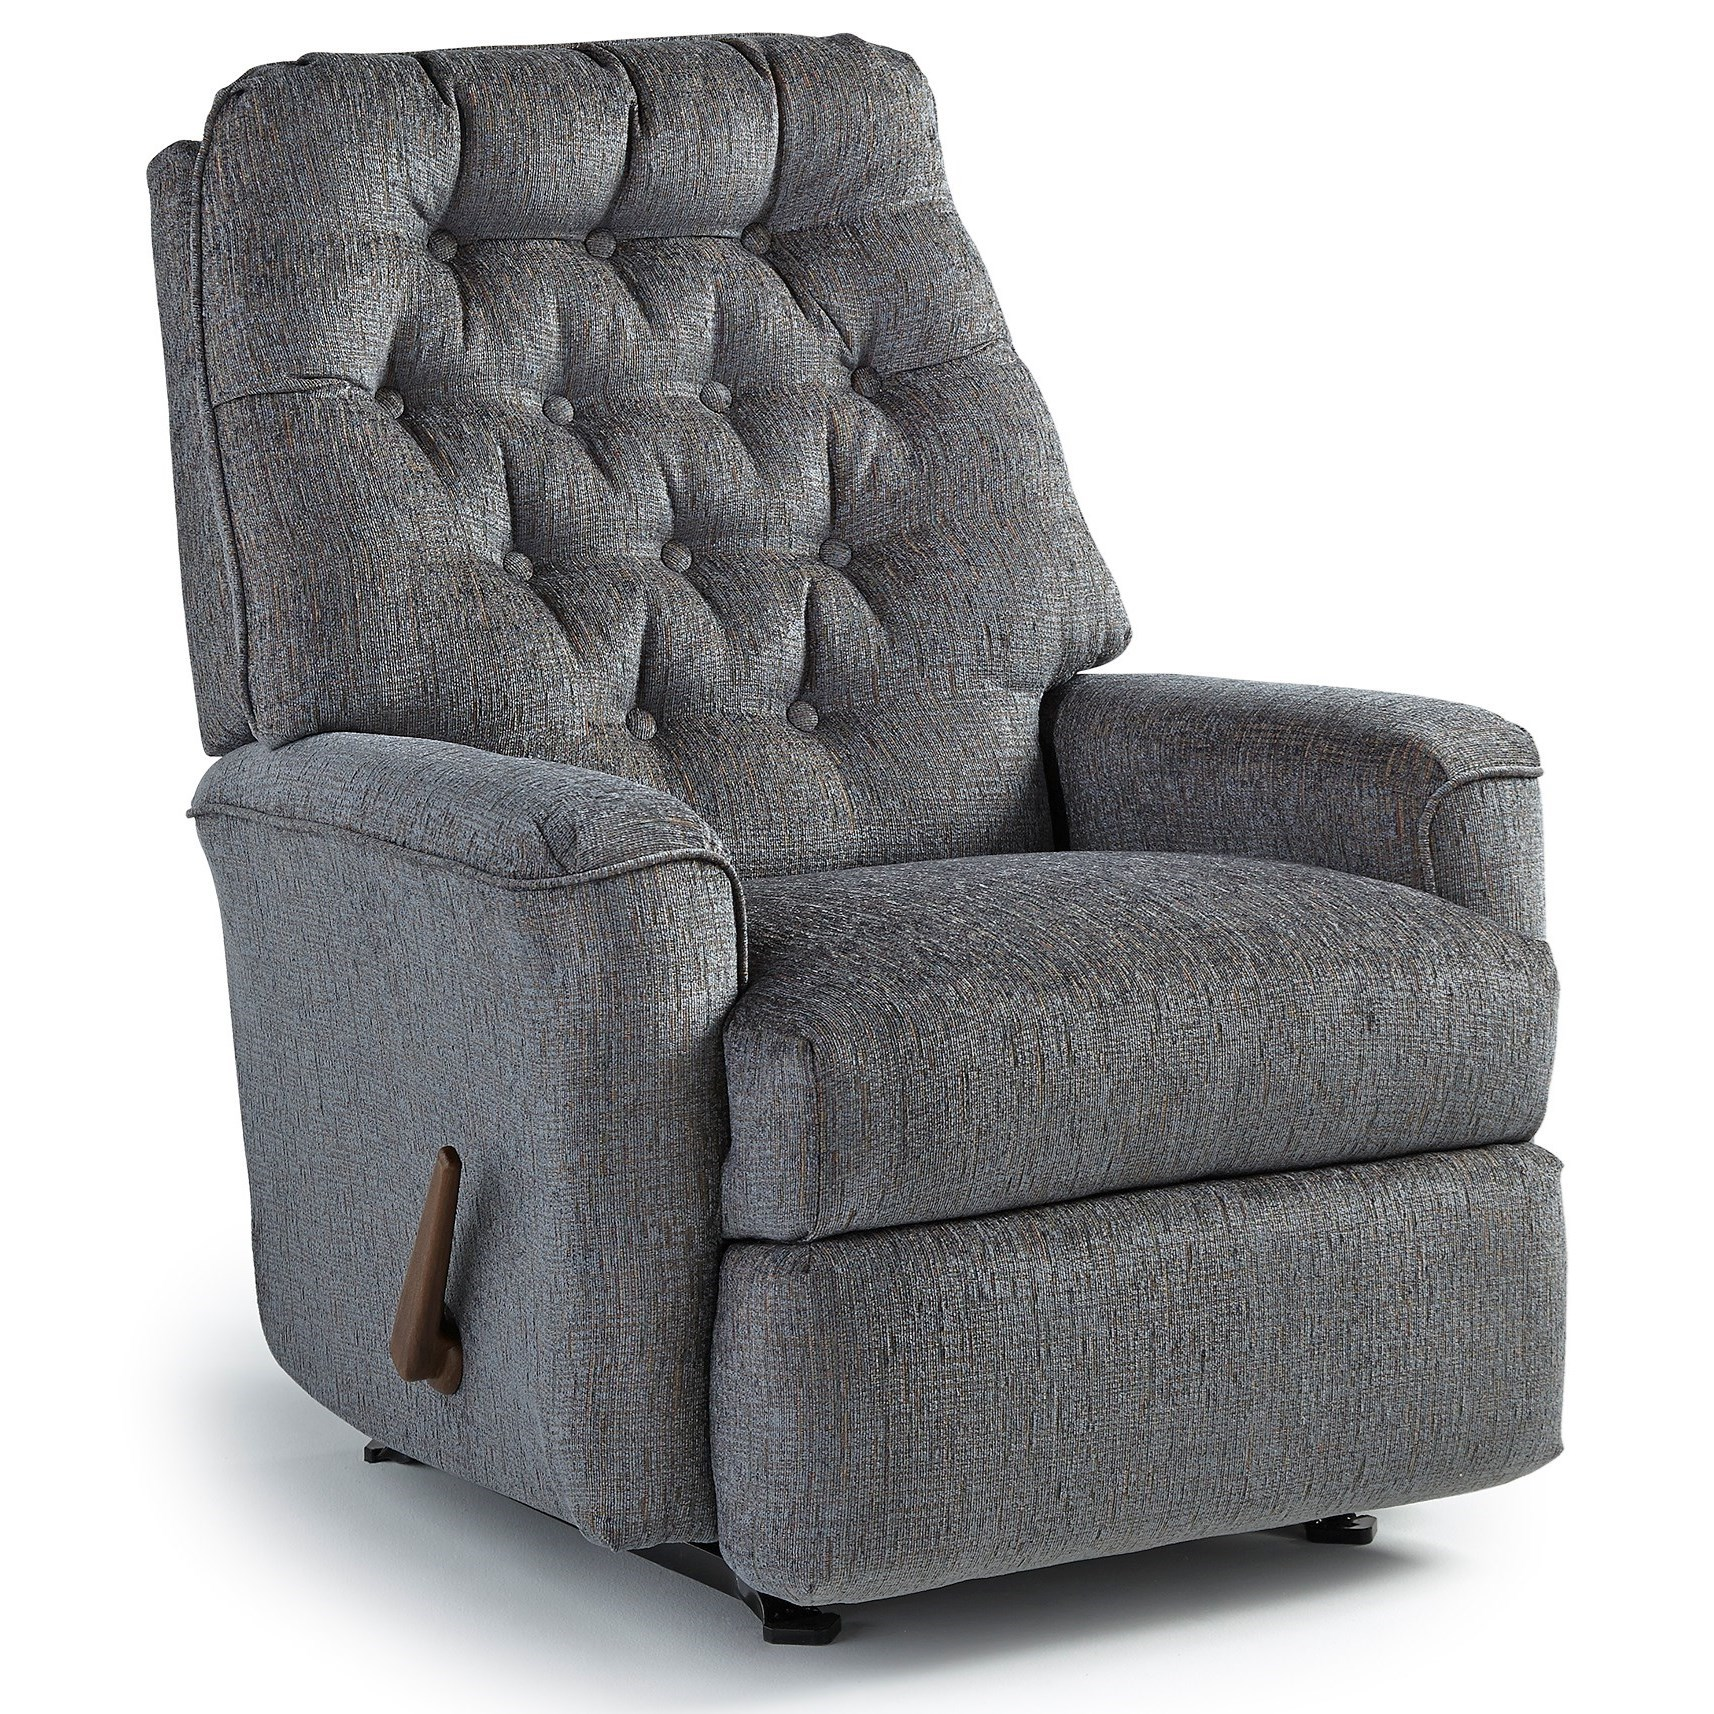 Medium Recliners Mexi Swivel Glider Recliner by Best Home Furnishings at Alison Craig Home Furnishings